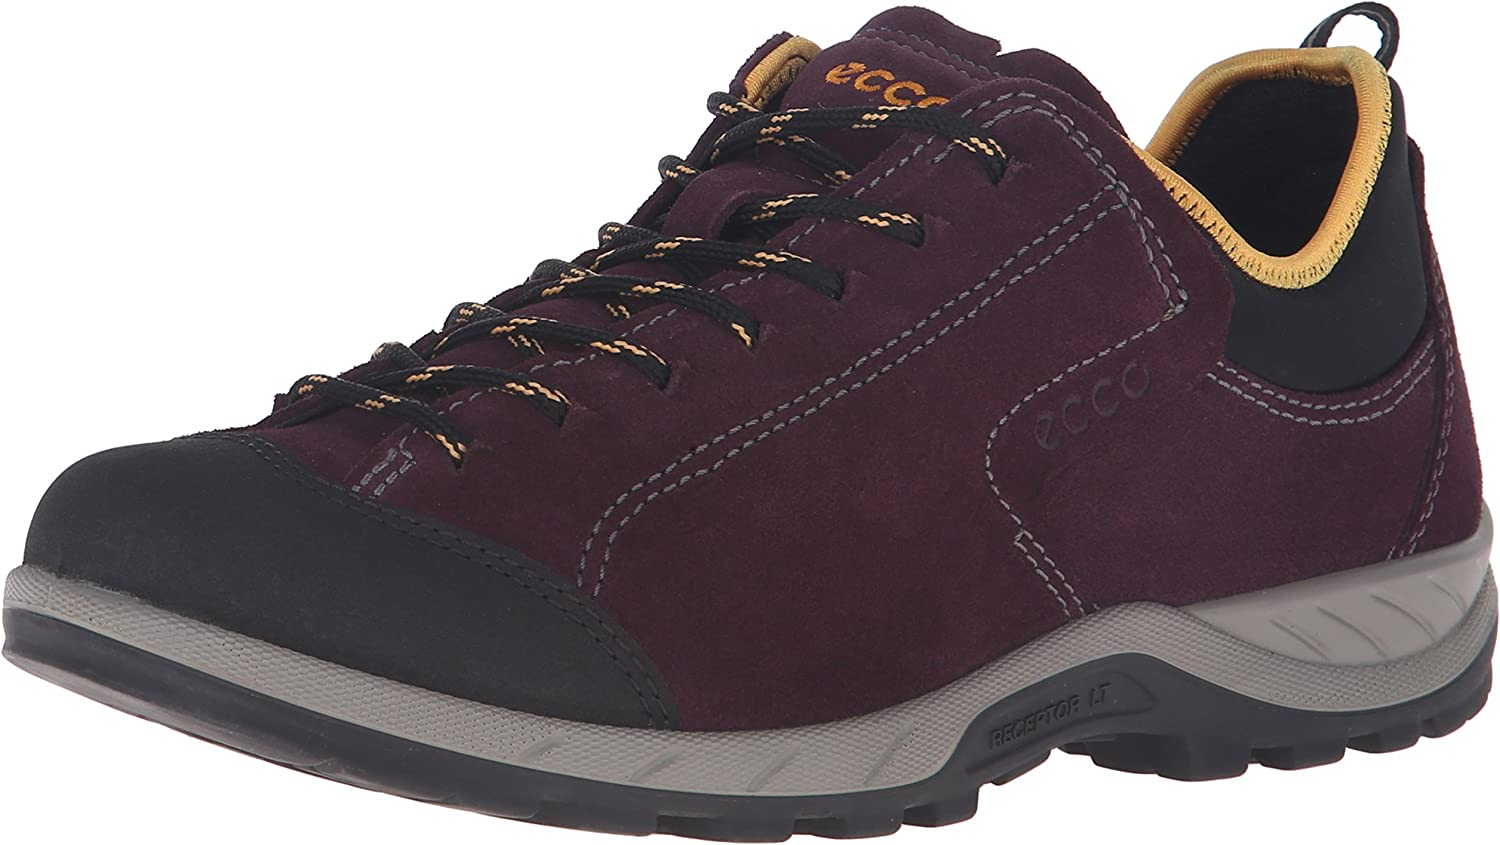 ECCO Women's Yura Low Hiking